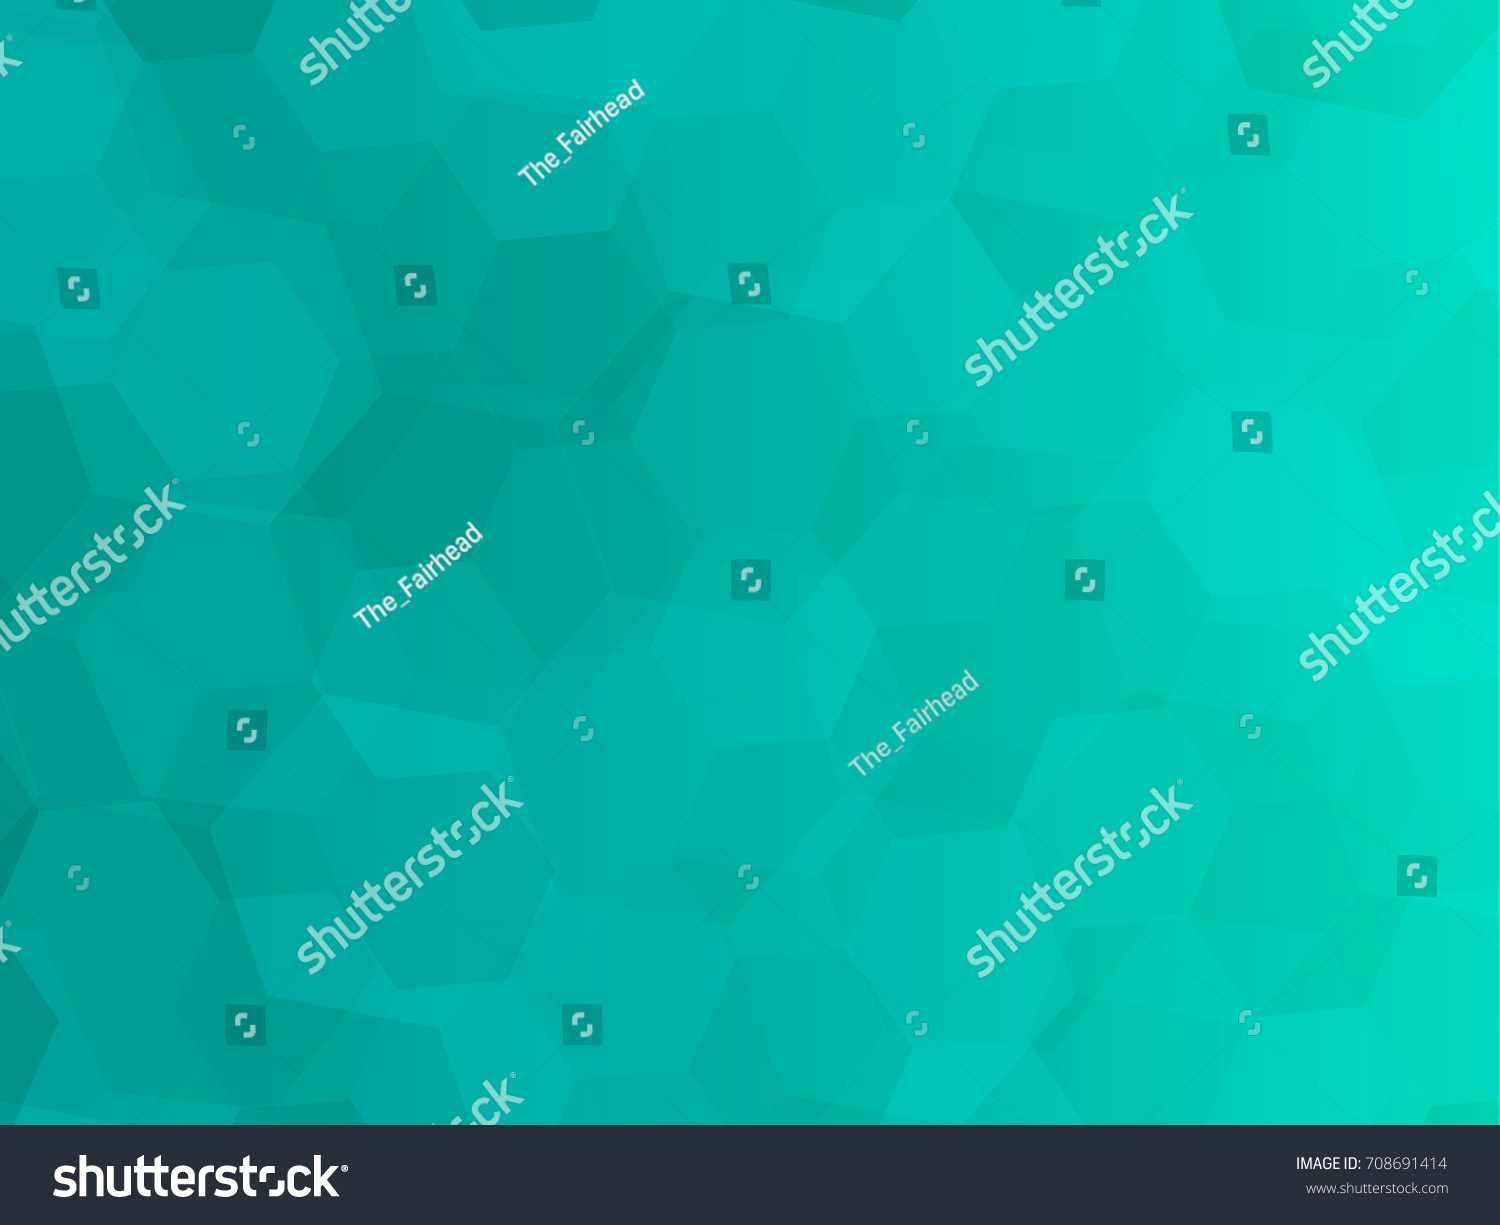 Abstract green turquoise hexagon background wallpaper stock vector abstract green turquoise hexagon background wallpaper bokeh illustration vector voltagebd Gallery